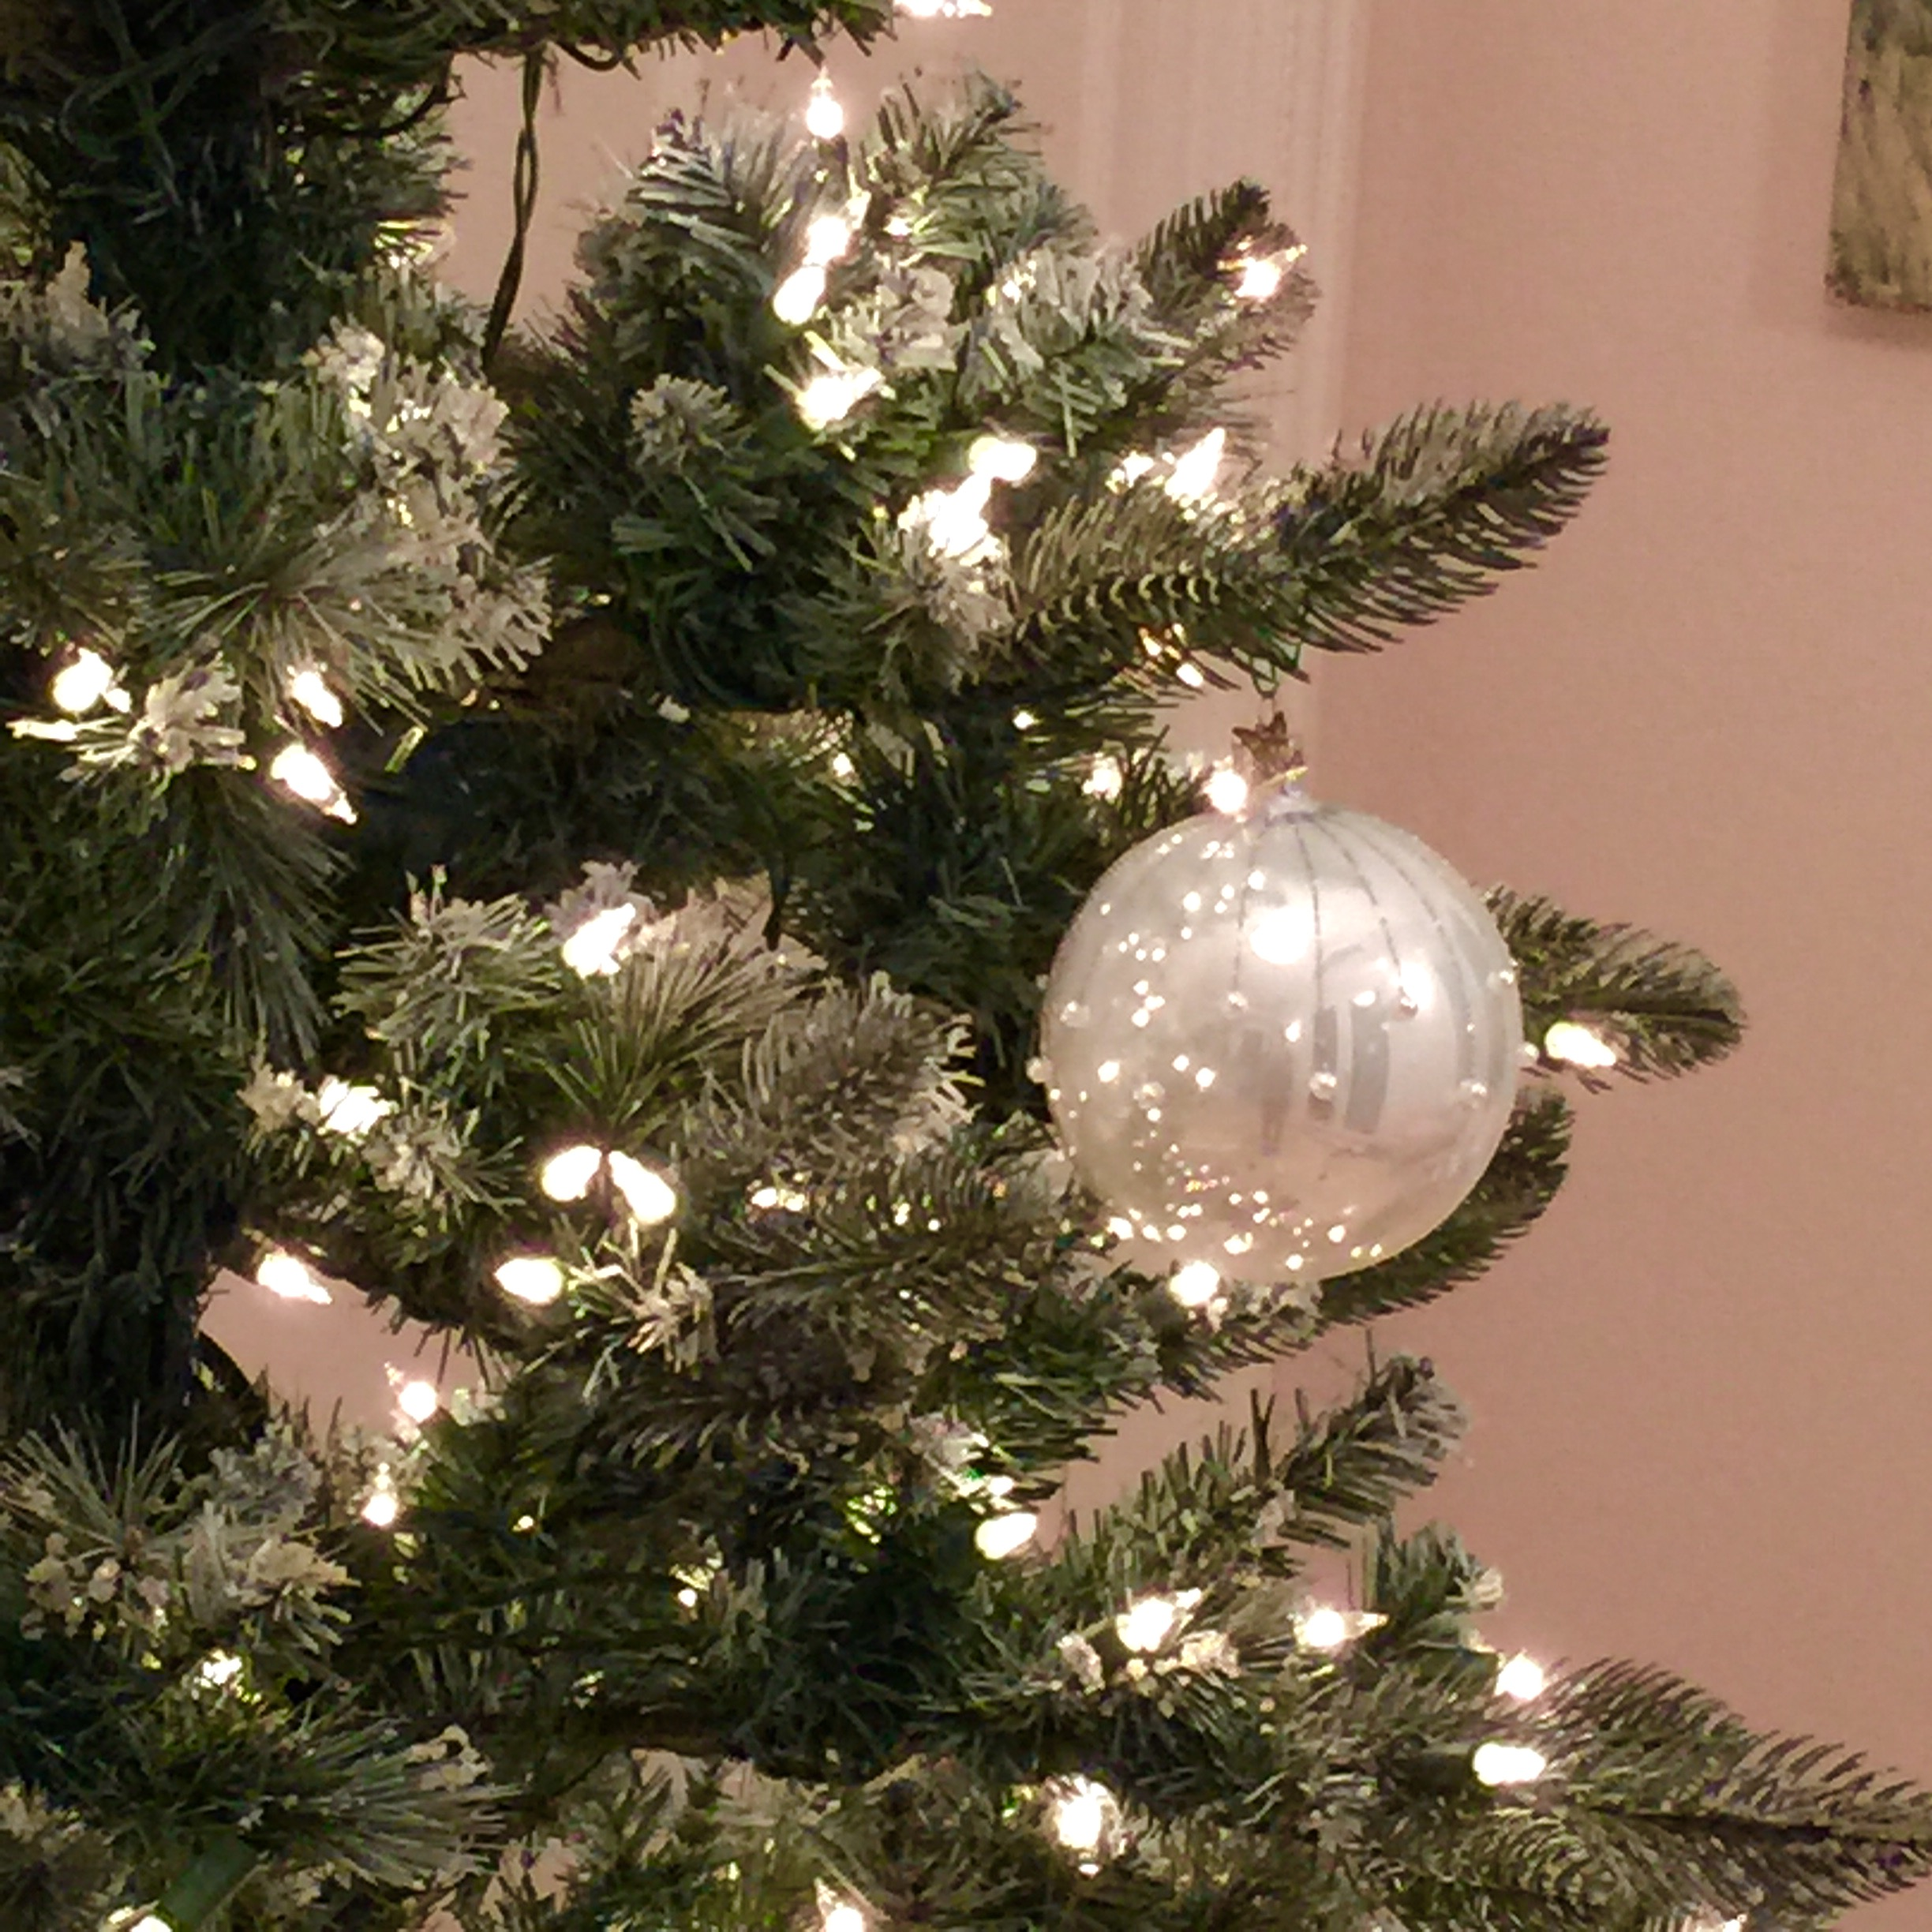 Sparkling on our own tree!